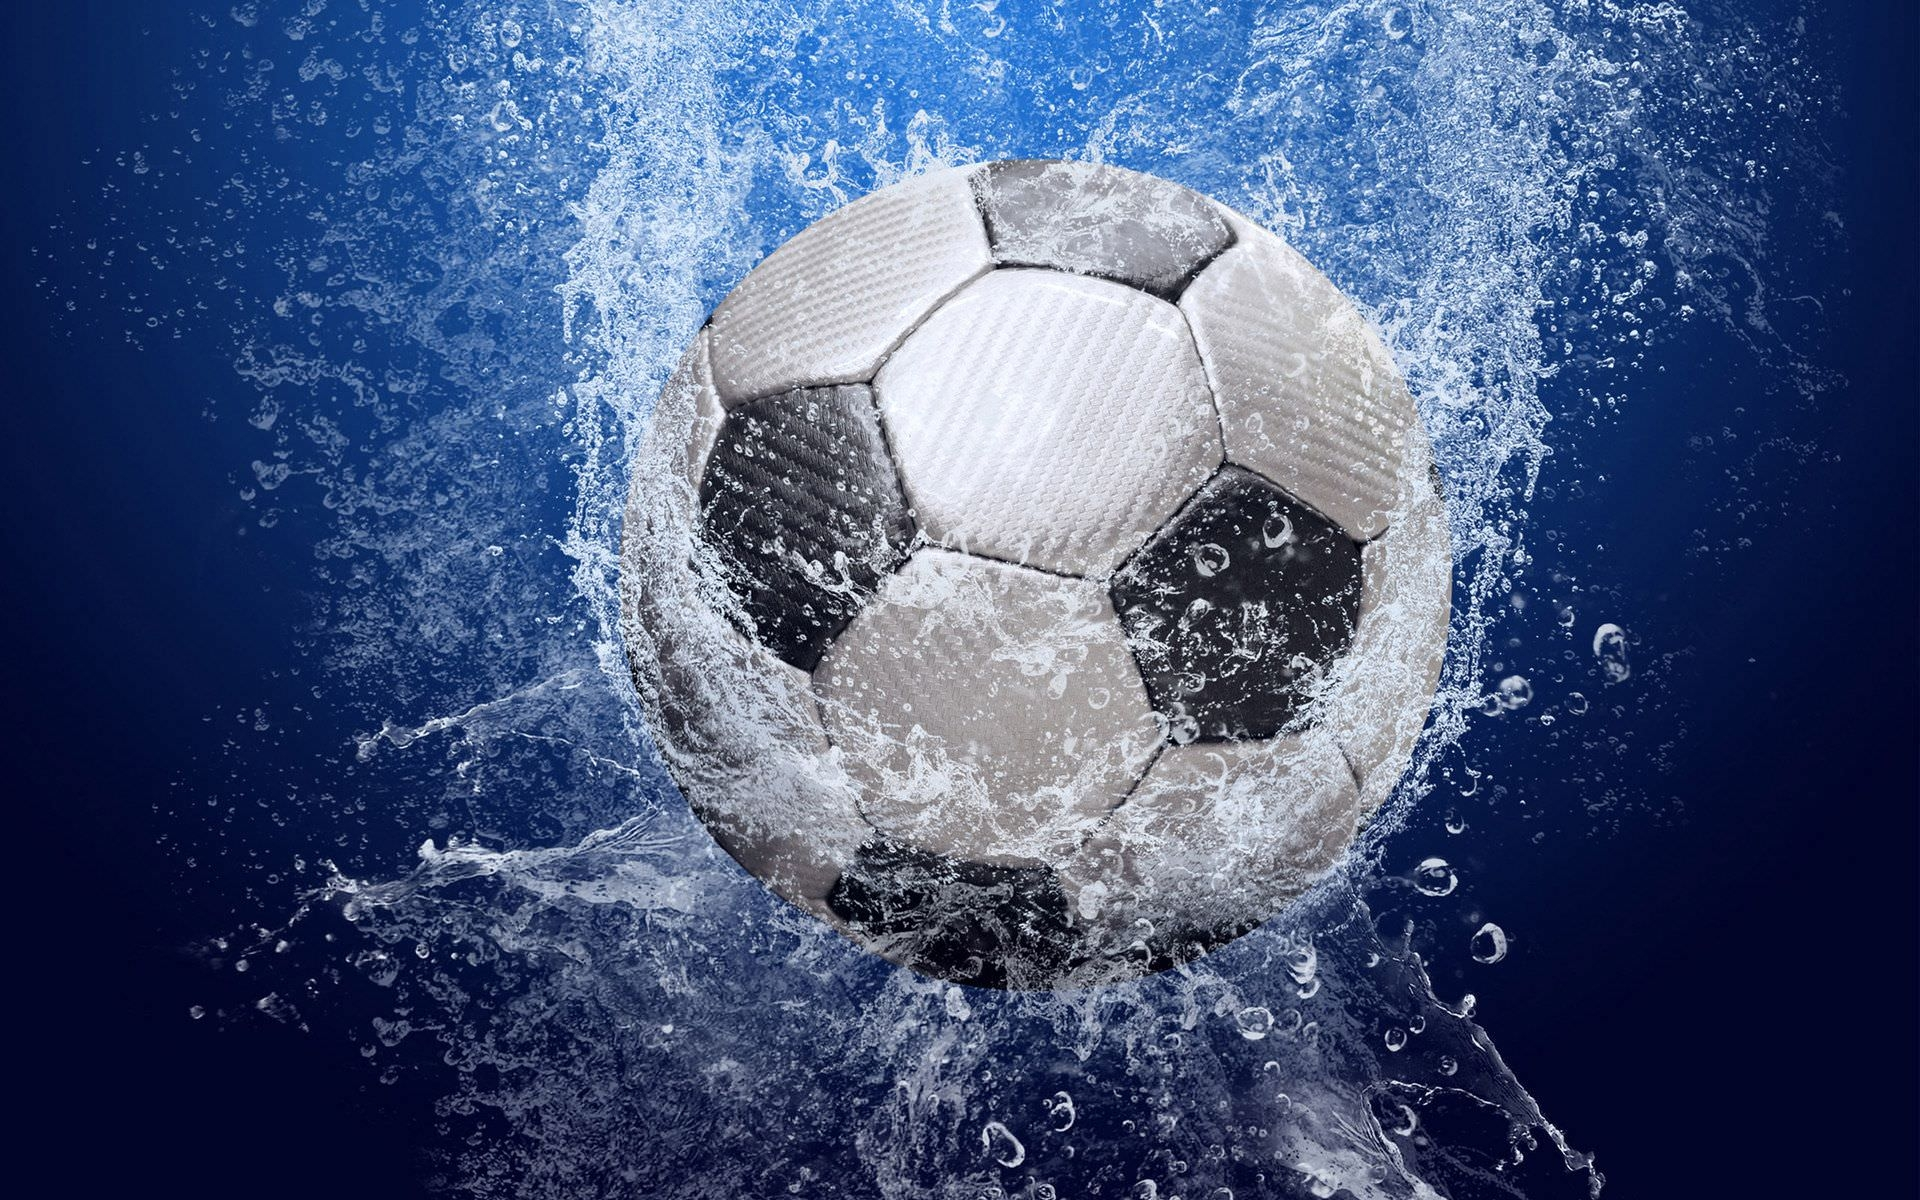 Soccer Background For Free Downlaod